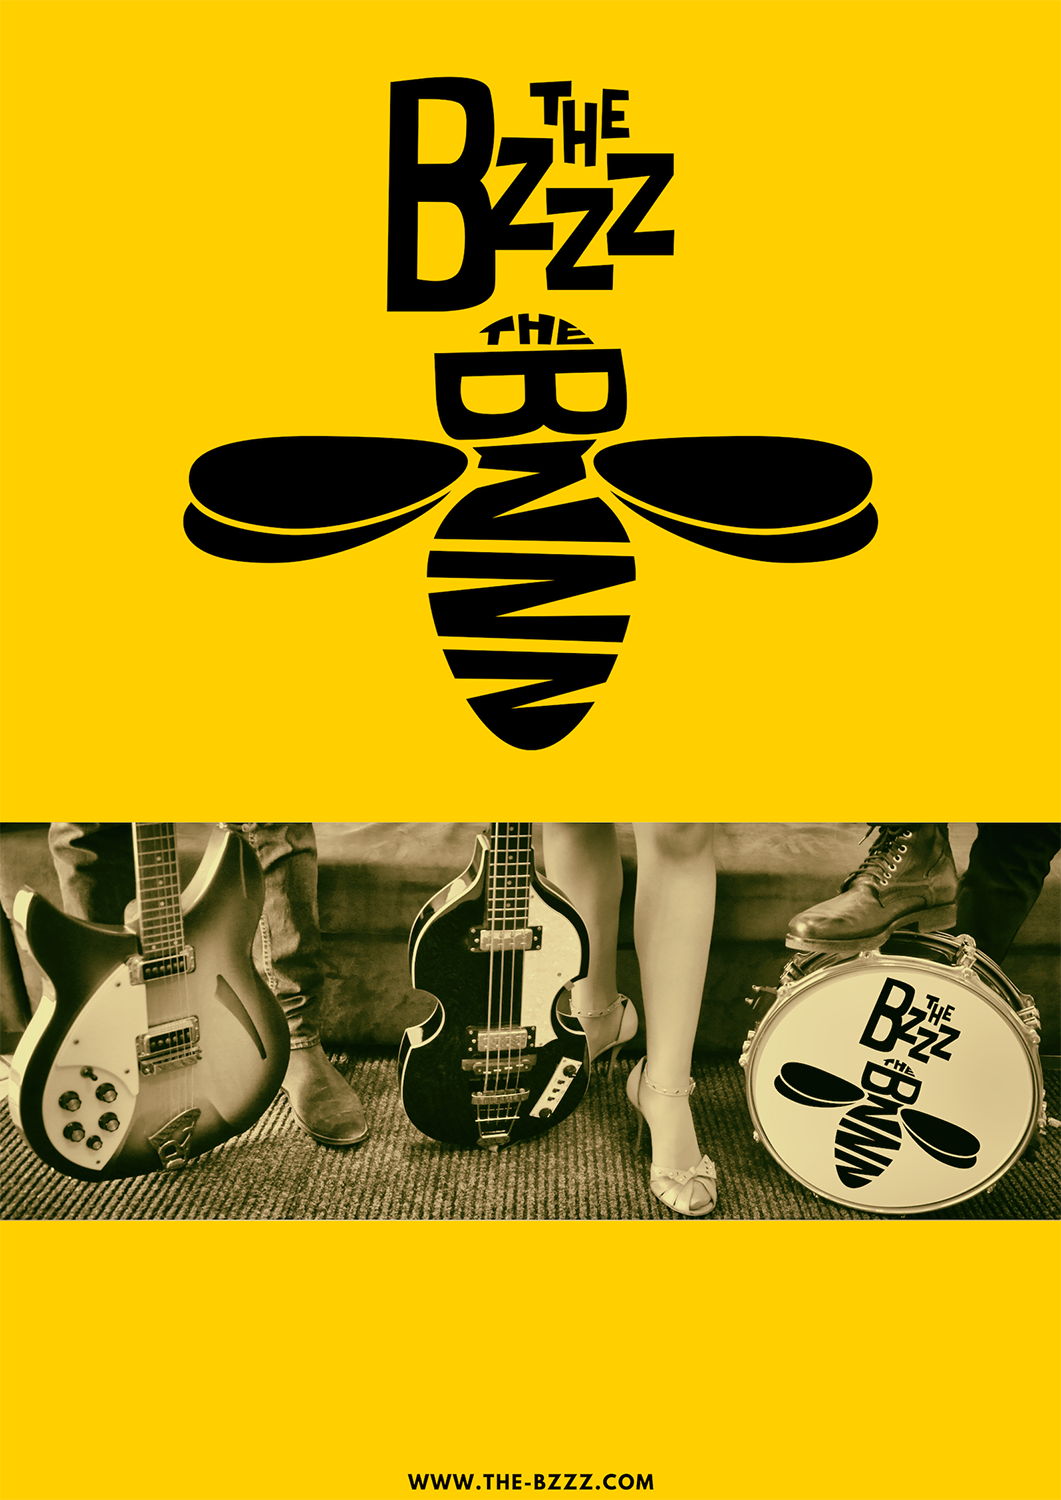 the BZZZ